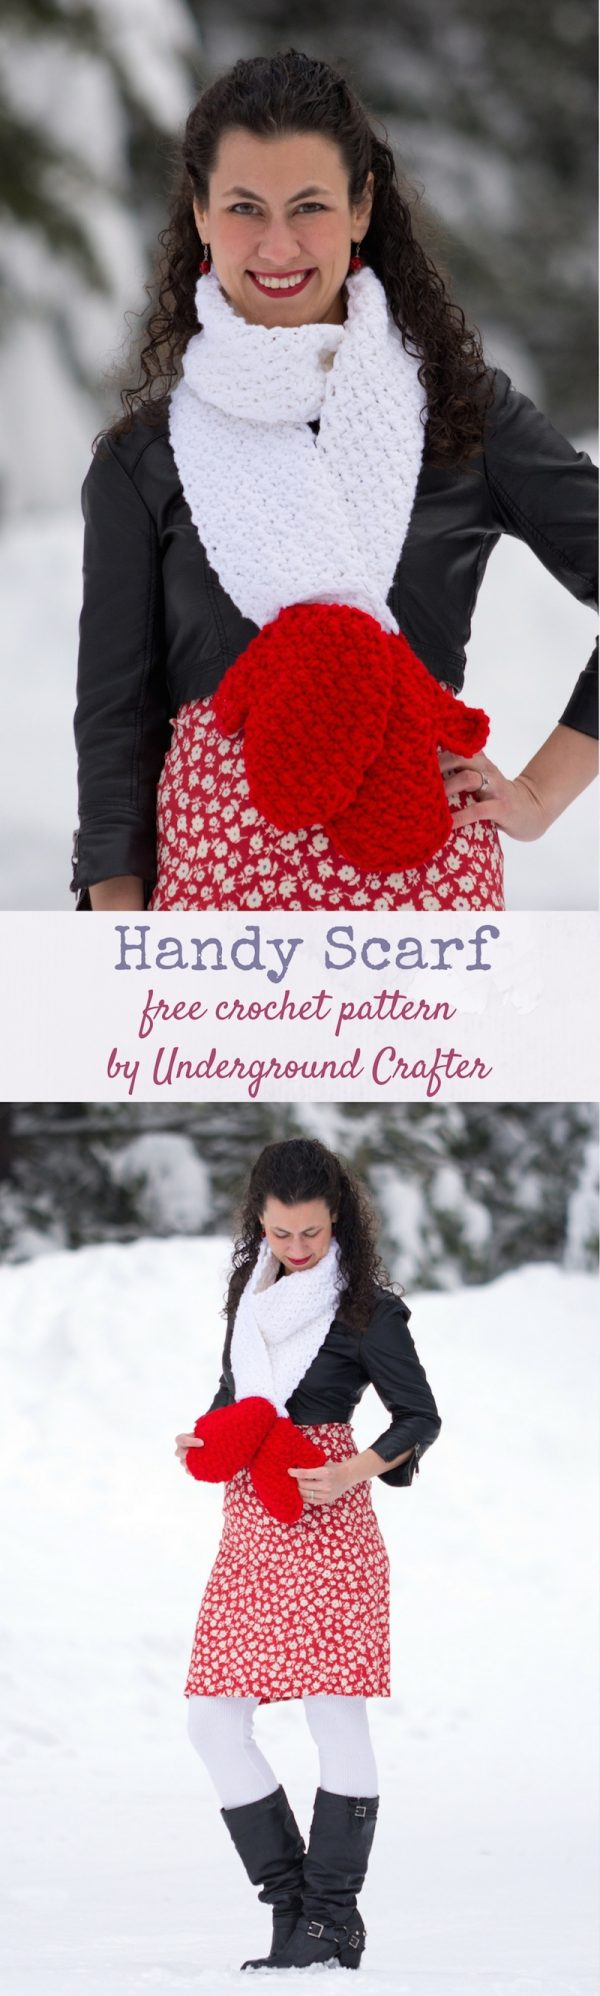 Free crochet pattern: Handy Scarf in Red Heart Super Saver yarn by Underground Crafter | This cozy keyhole scarf features two mock mittens at the end. This pattern is part of the Crochet Charity Drive with Blackstone Designs. Find the Crochet Charity Drive group on Facebook!